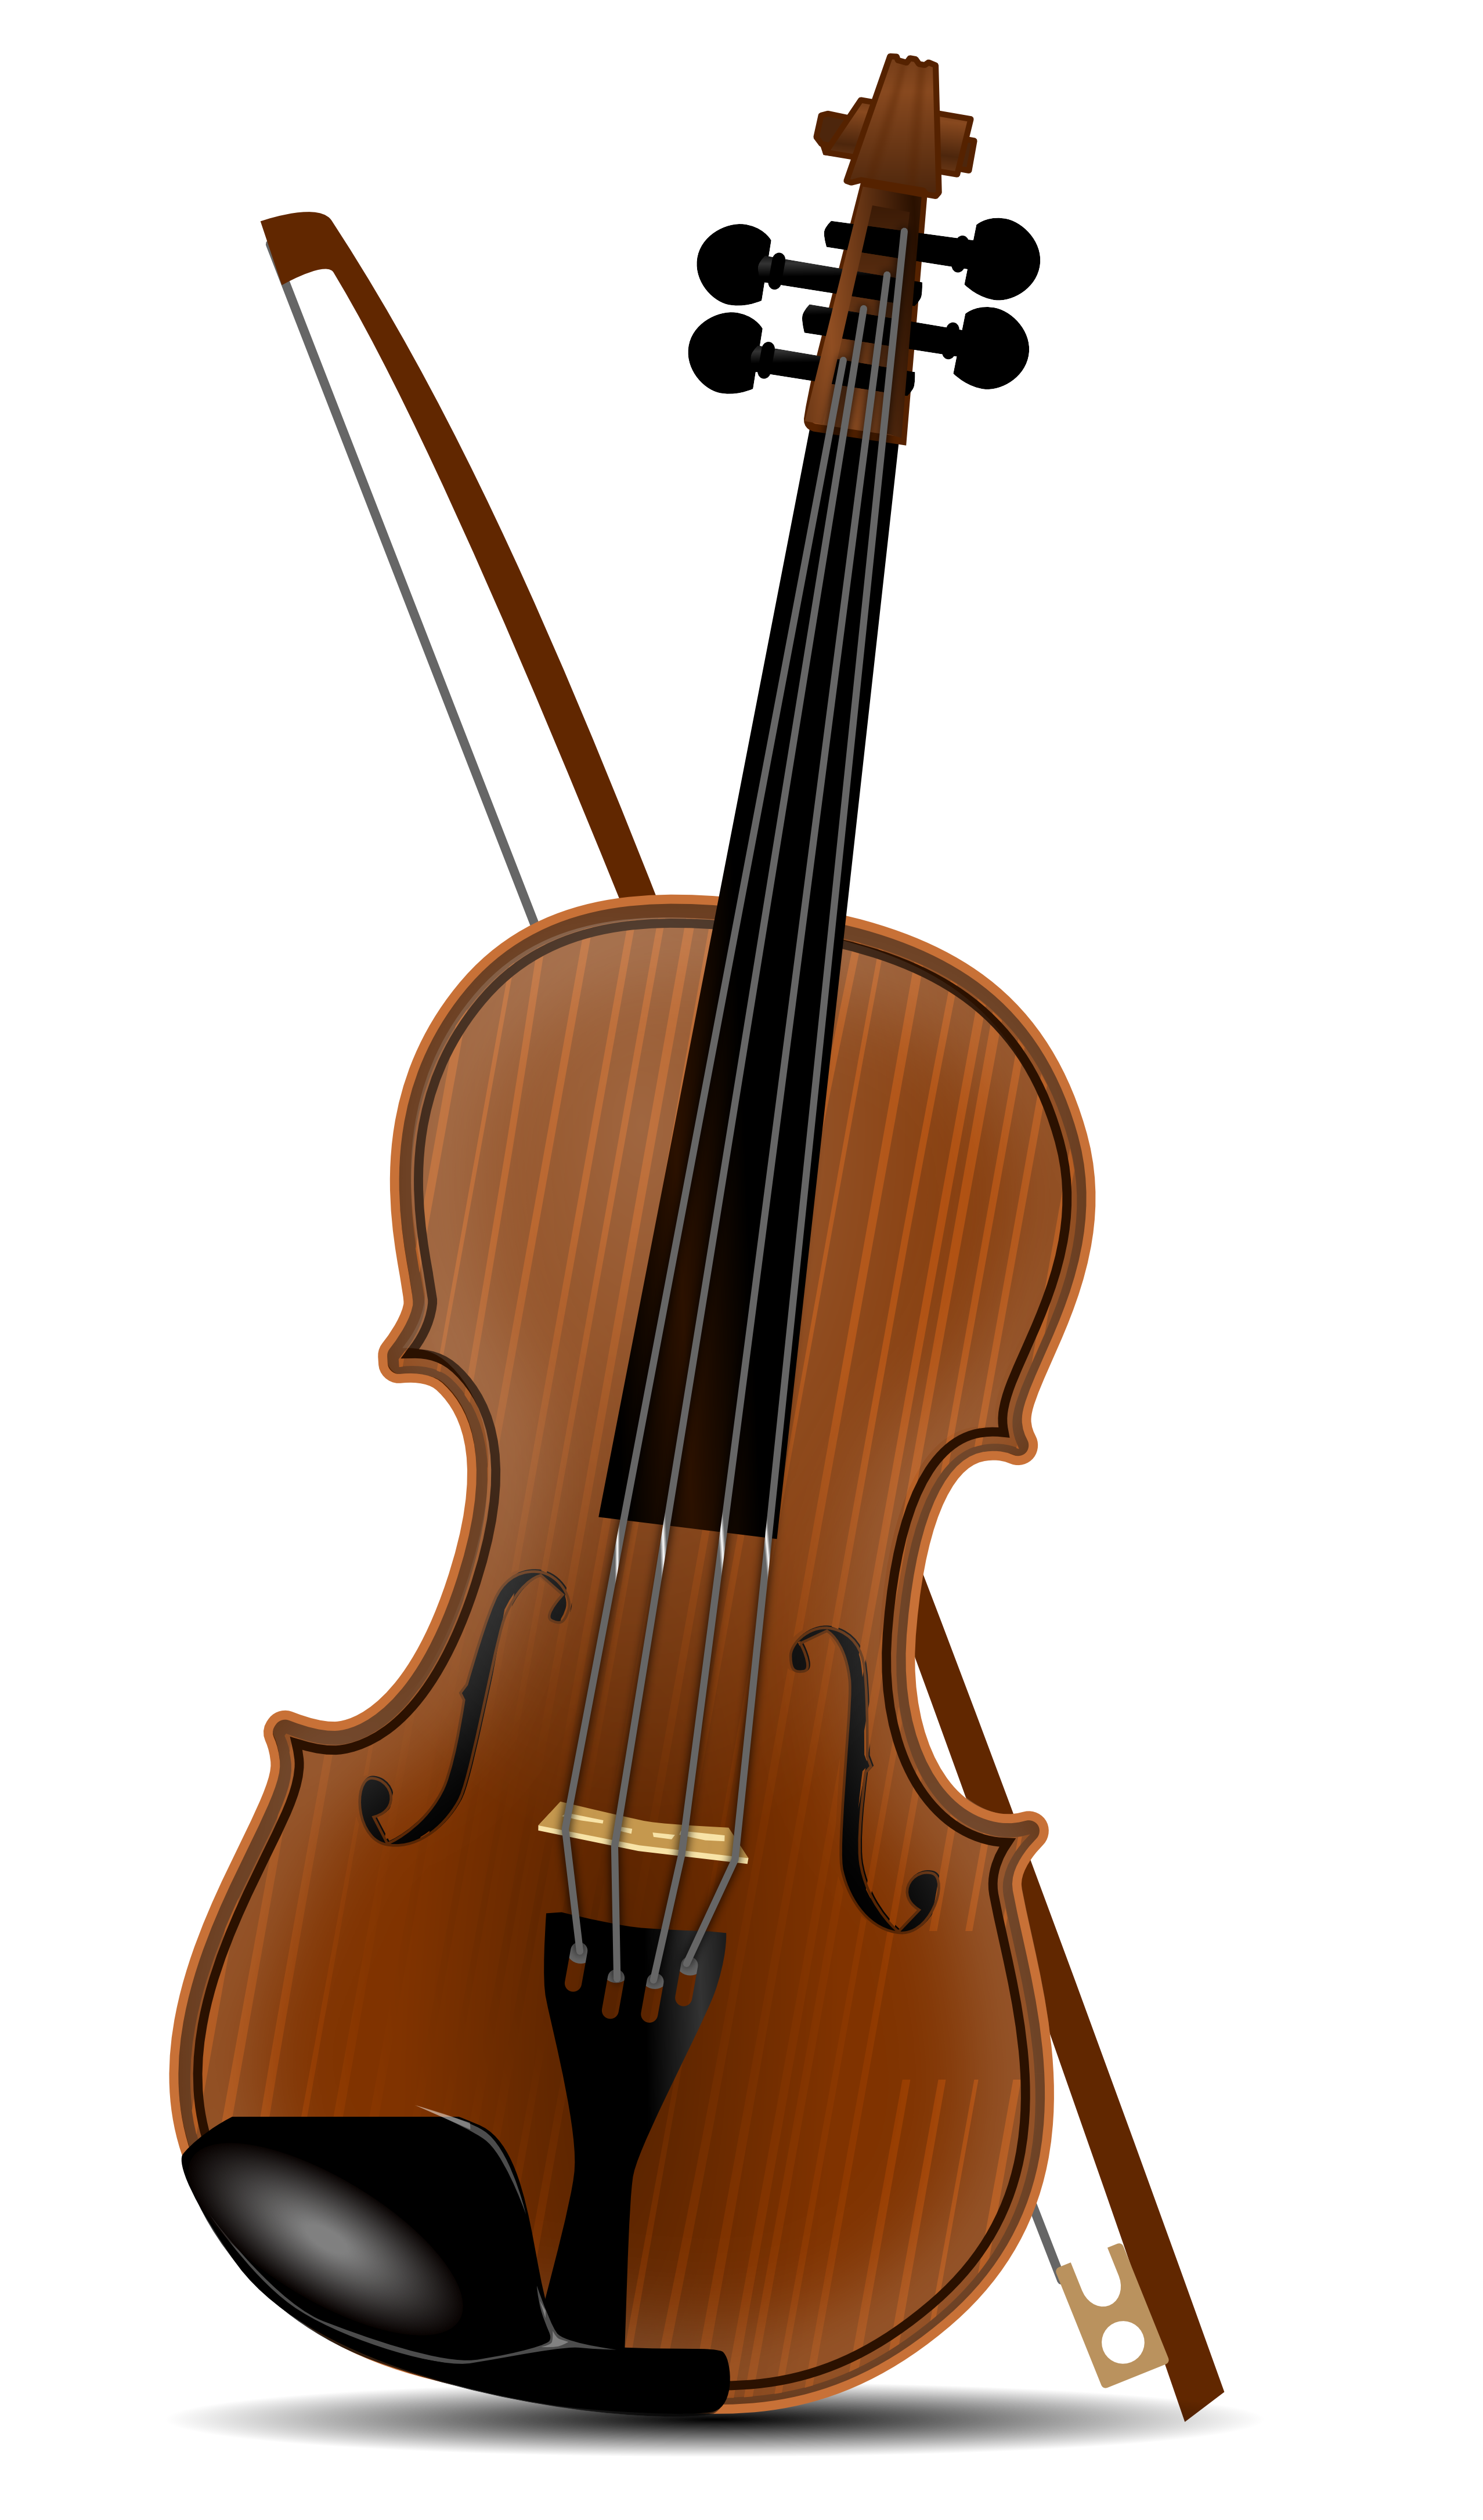 banner freeuse download Violin clip art pinterest. Cello clipart chinese american.